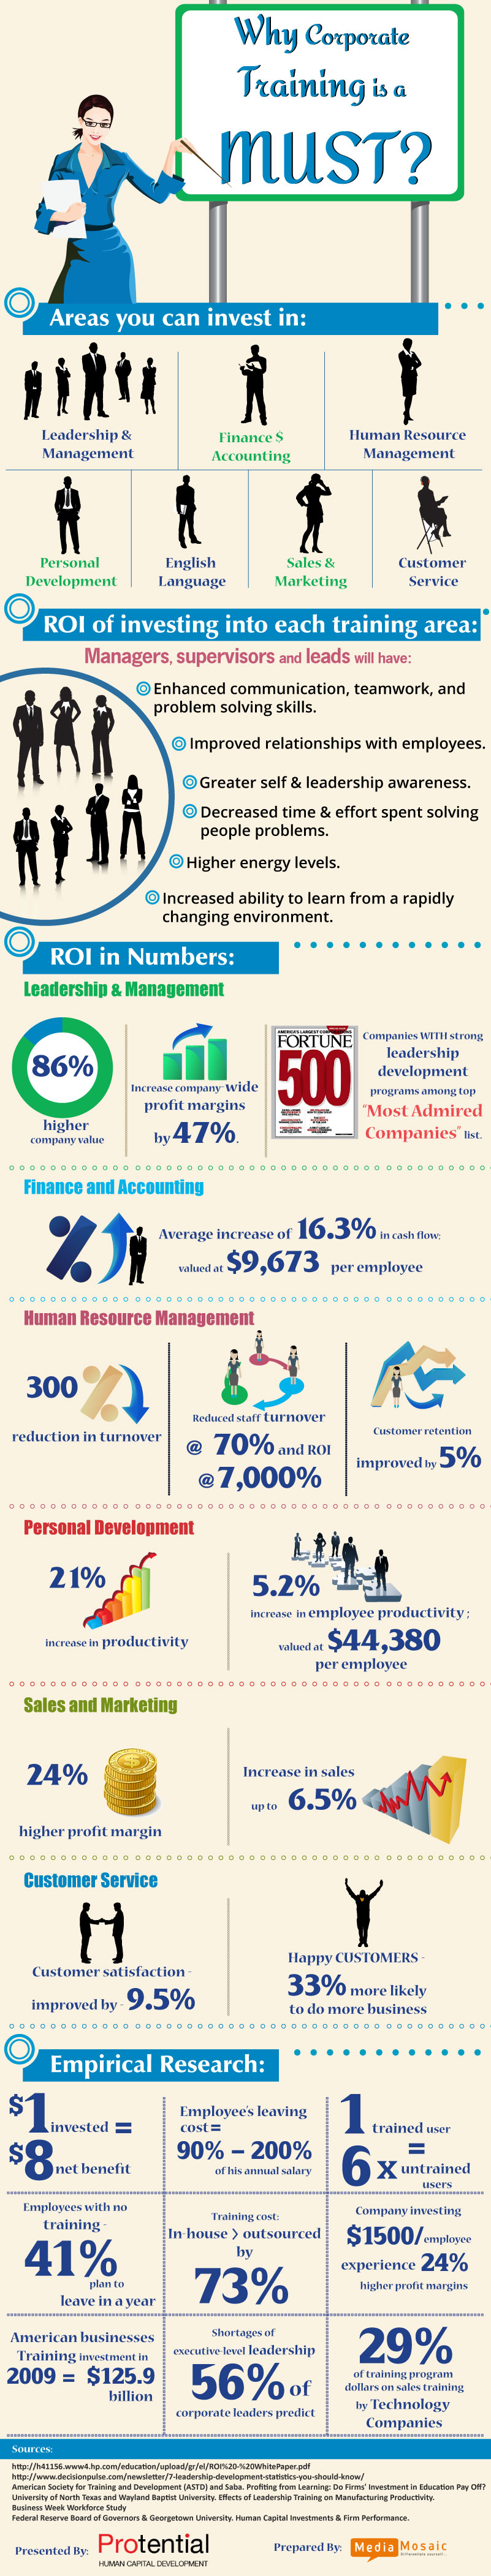 How Businesses Can Benefit by Investing in Corporate Training image Corporate Training Programs Areas and ROI Calculation by Protential Infographic